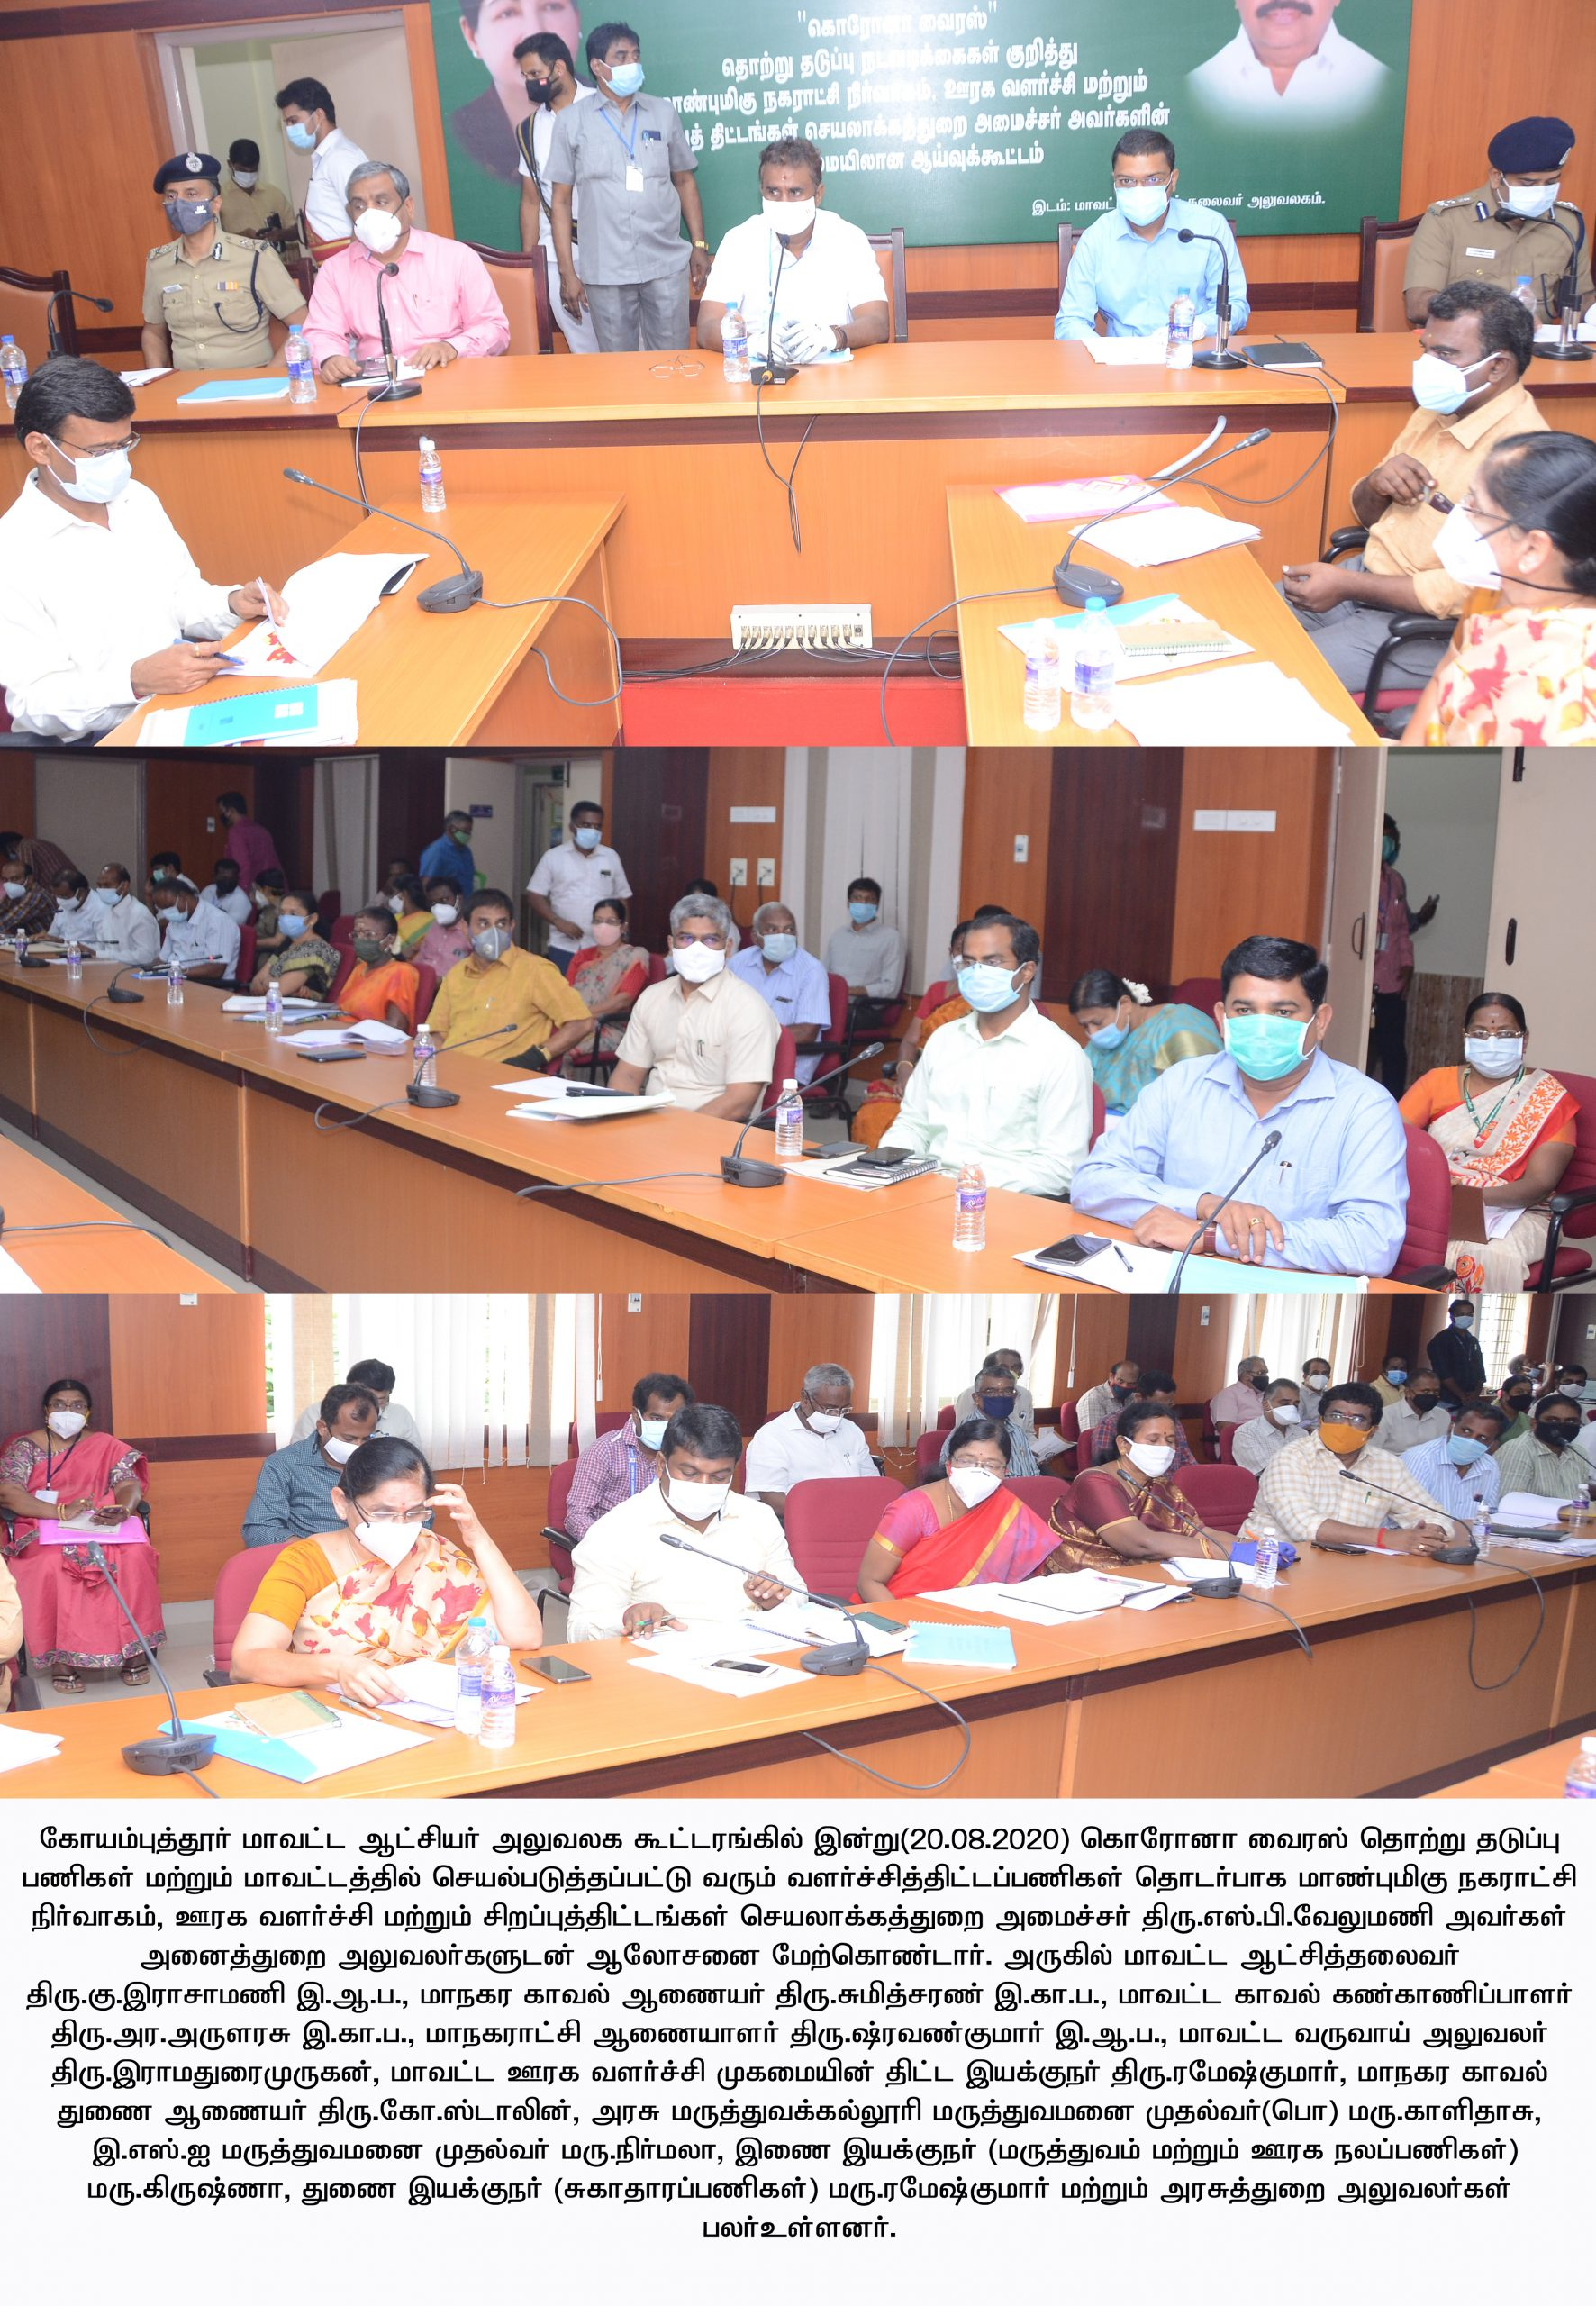 Honble Minister conducted Corona Virus Prevention Review meeting